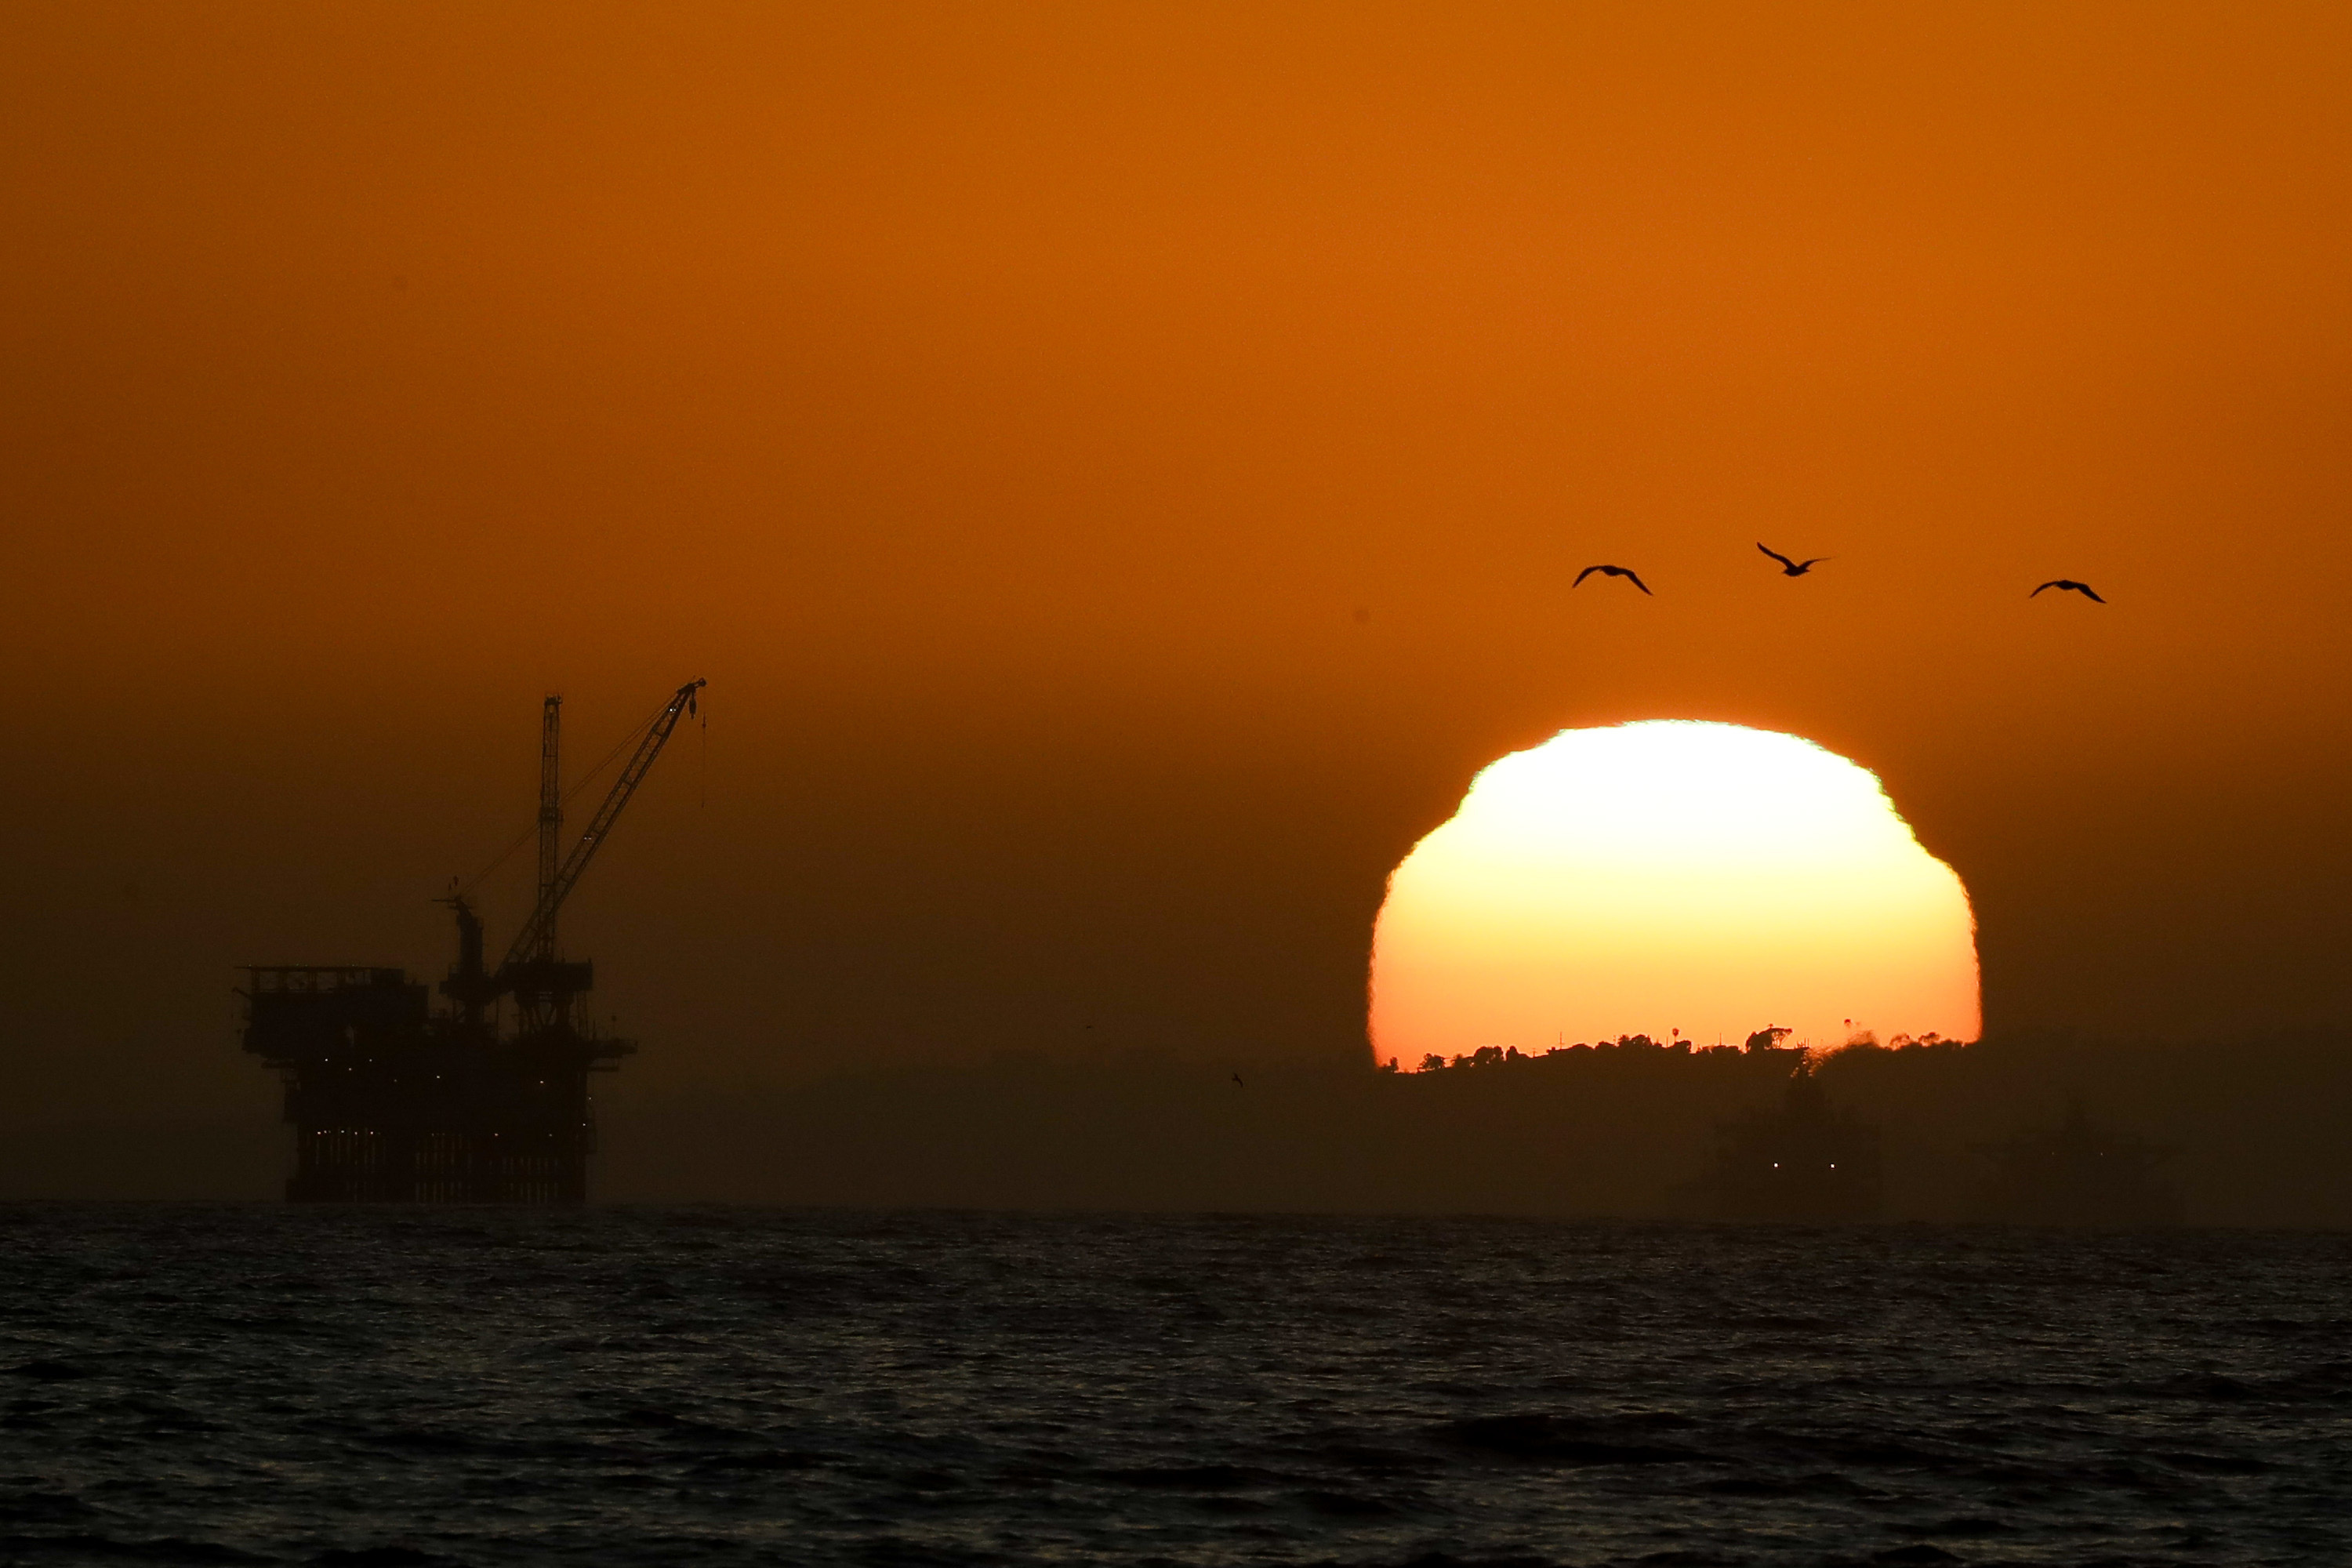 Offshore oil drilling platforms are seen Tuesday, April 21, 2020, in Huntington Beach, Calif. Oil prices continue to drop, because very few people are flying or driving, and factories have shut amid widespread stay-at-home orders due to the coronavirus concerns. (AP Photo/Chris Carlson)